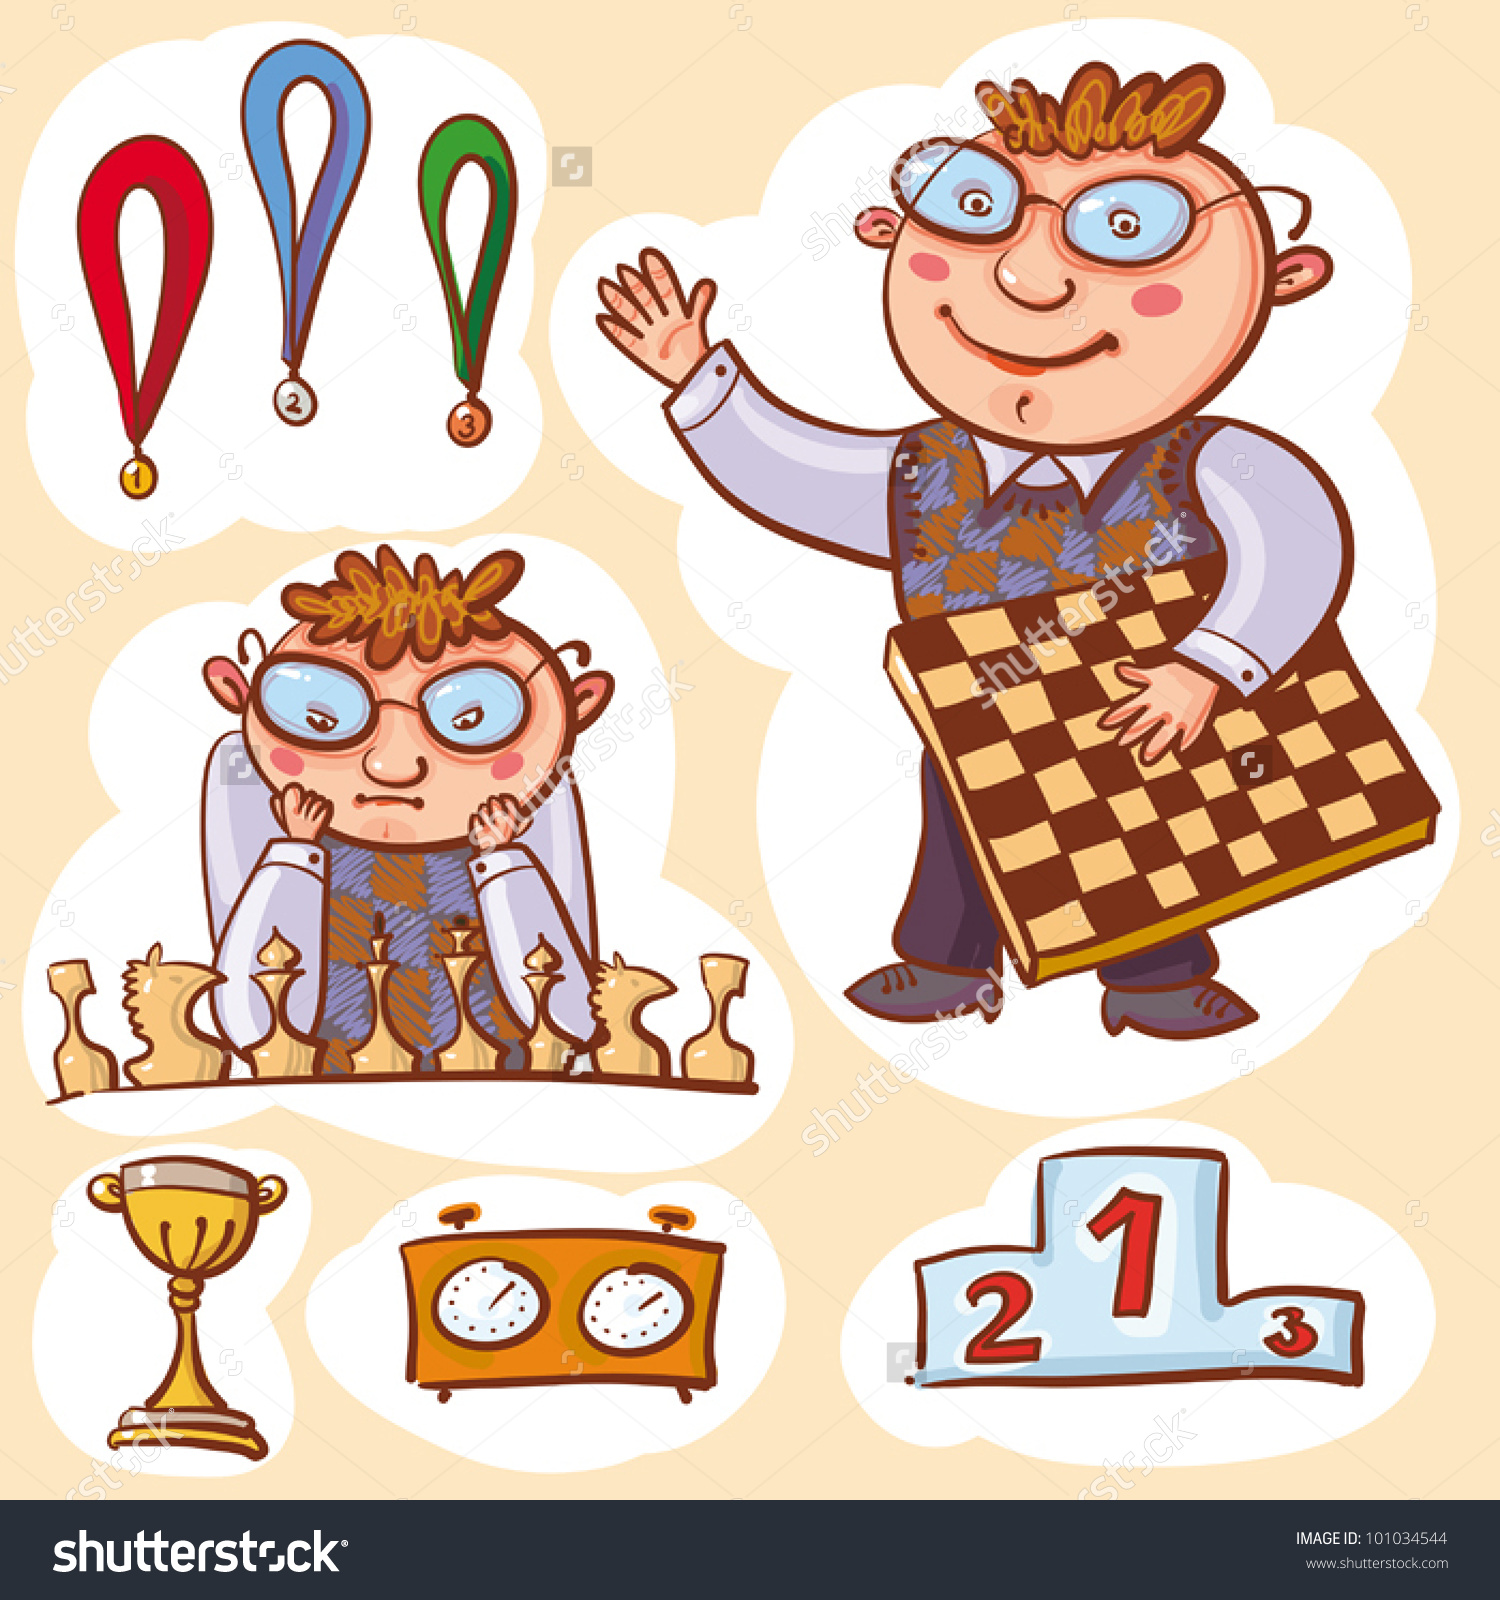 Vector Illustration Little Chess Champion Medals Stock Vector.